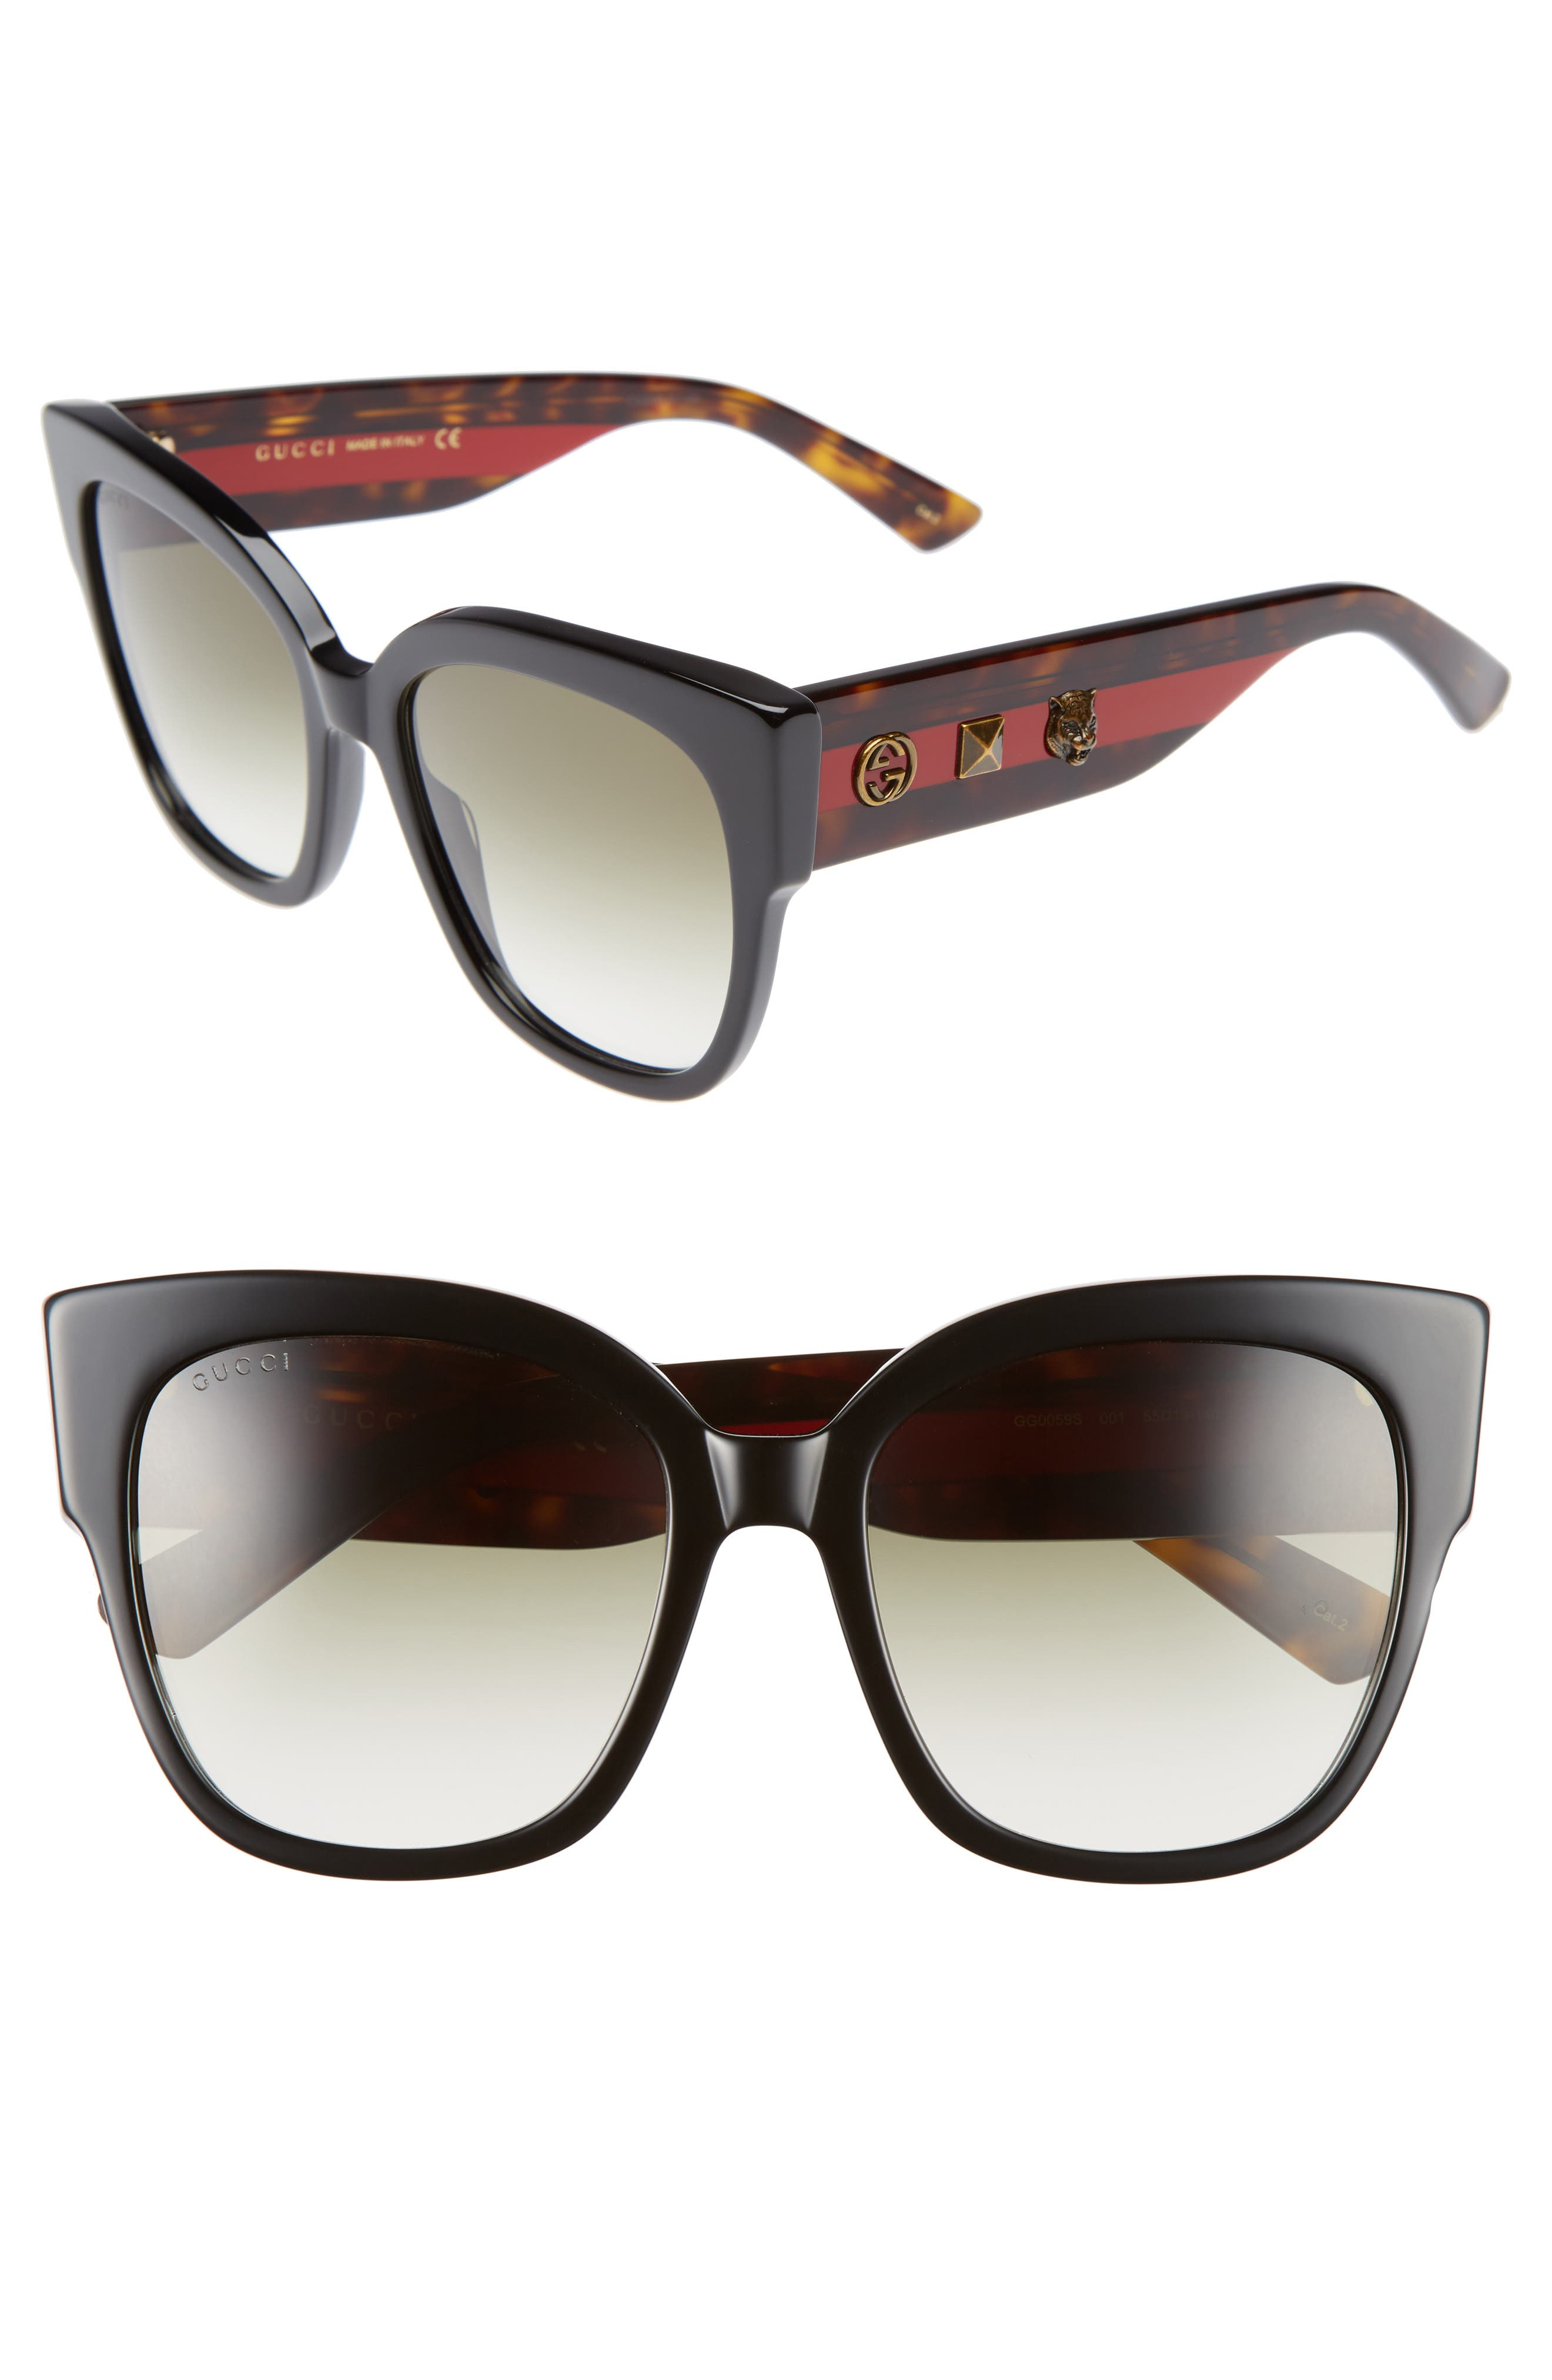 55mm Butterfly Sunglasses,                             Main thumbnail 1, color,                             001